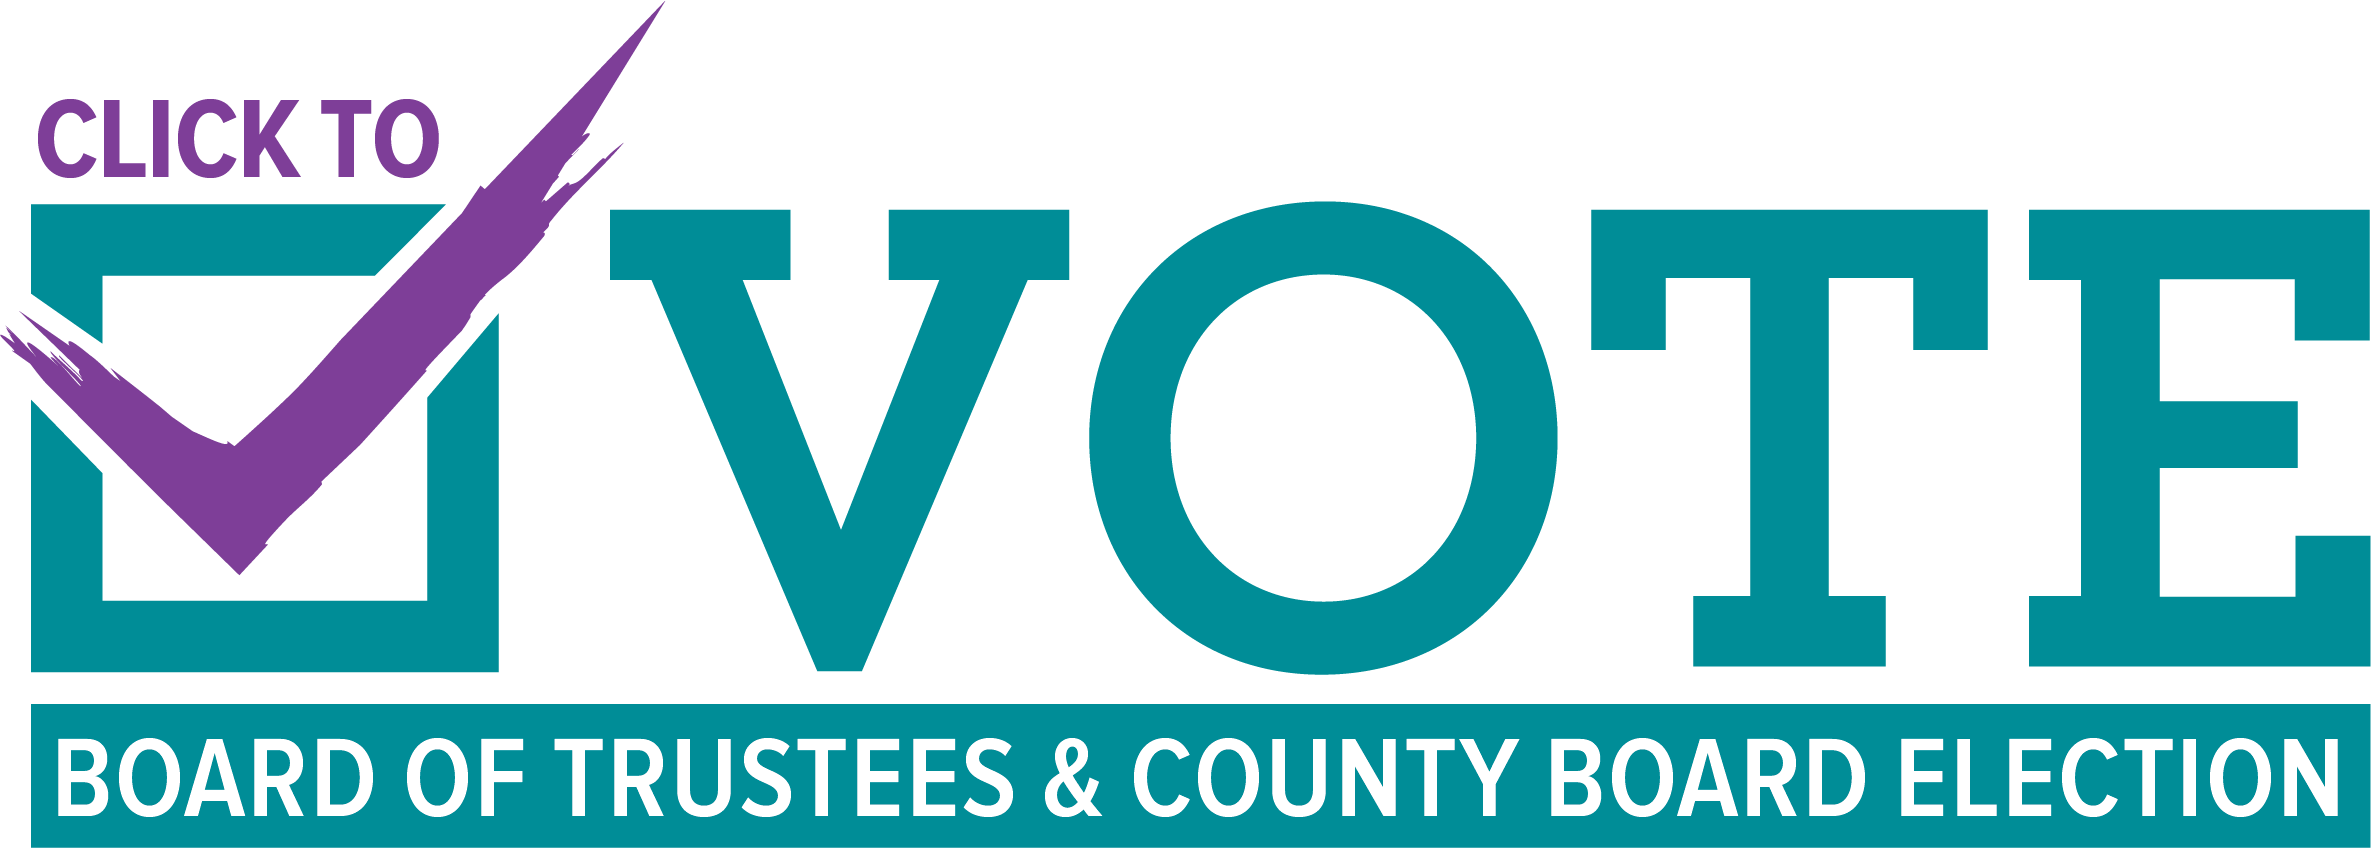 Click to Vote - Board of Trustees County Board Election